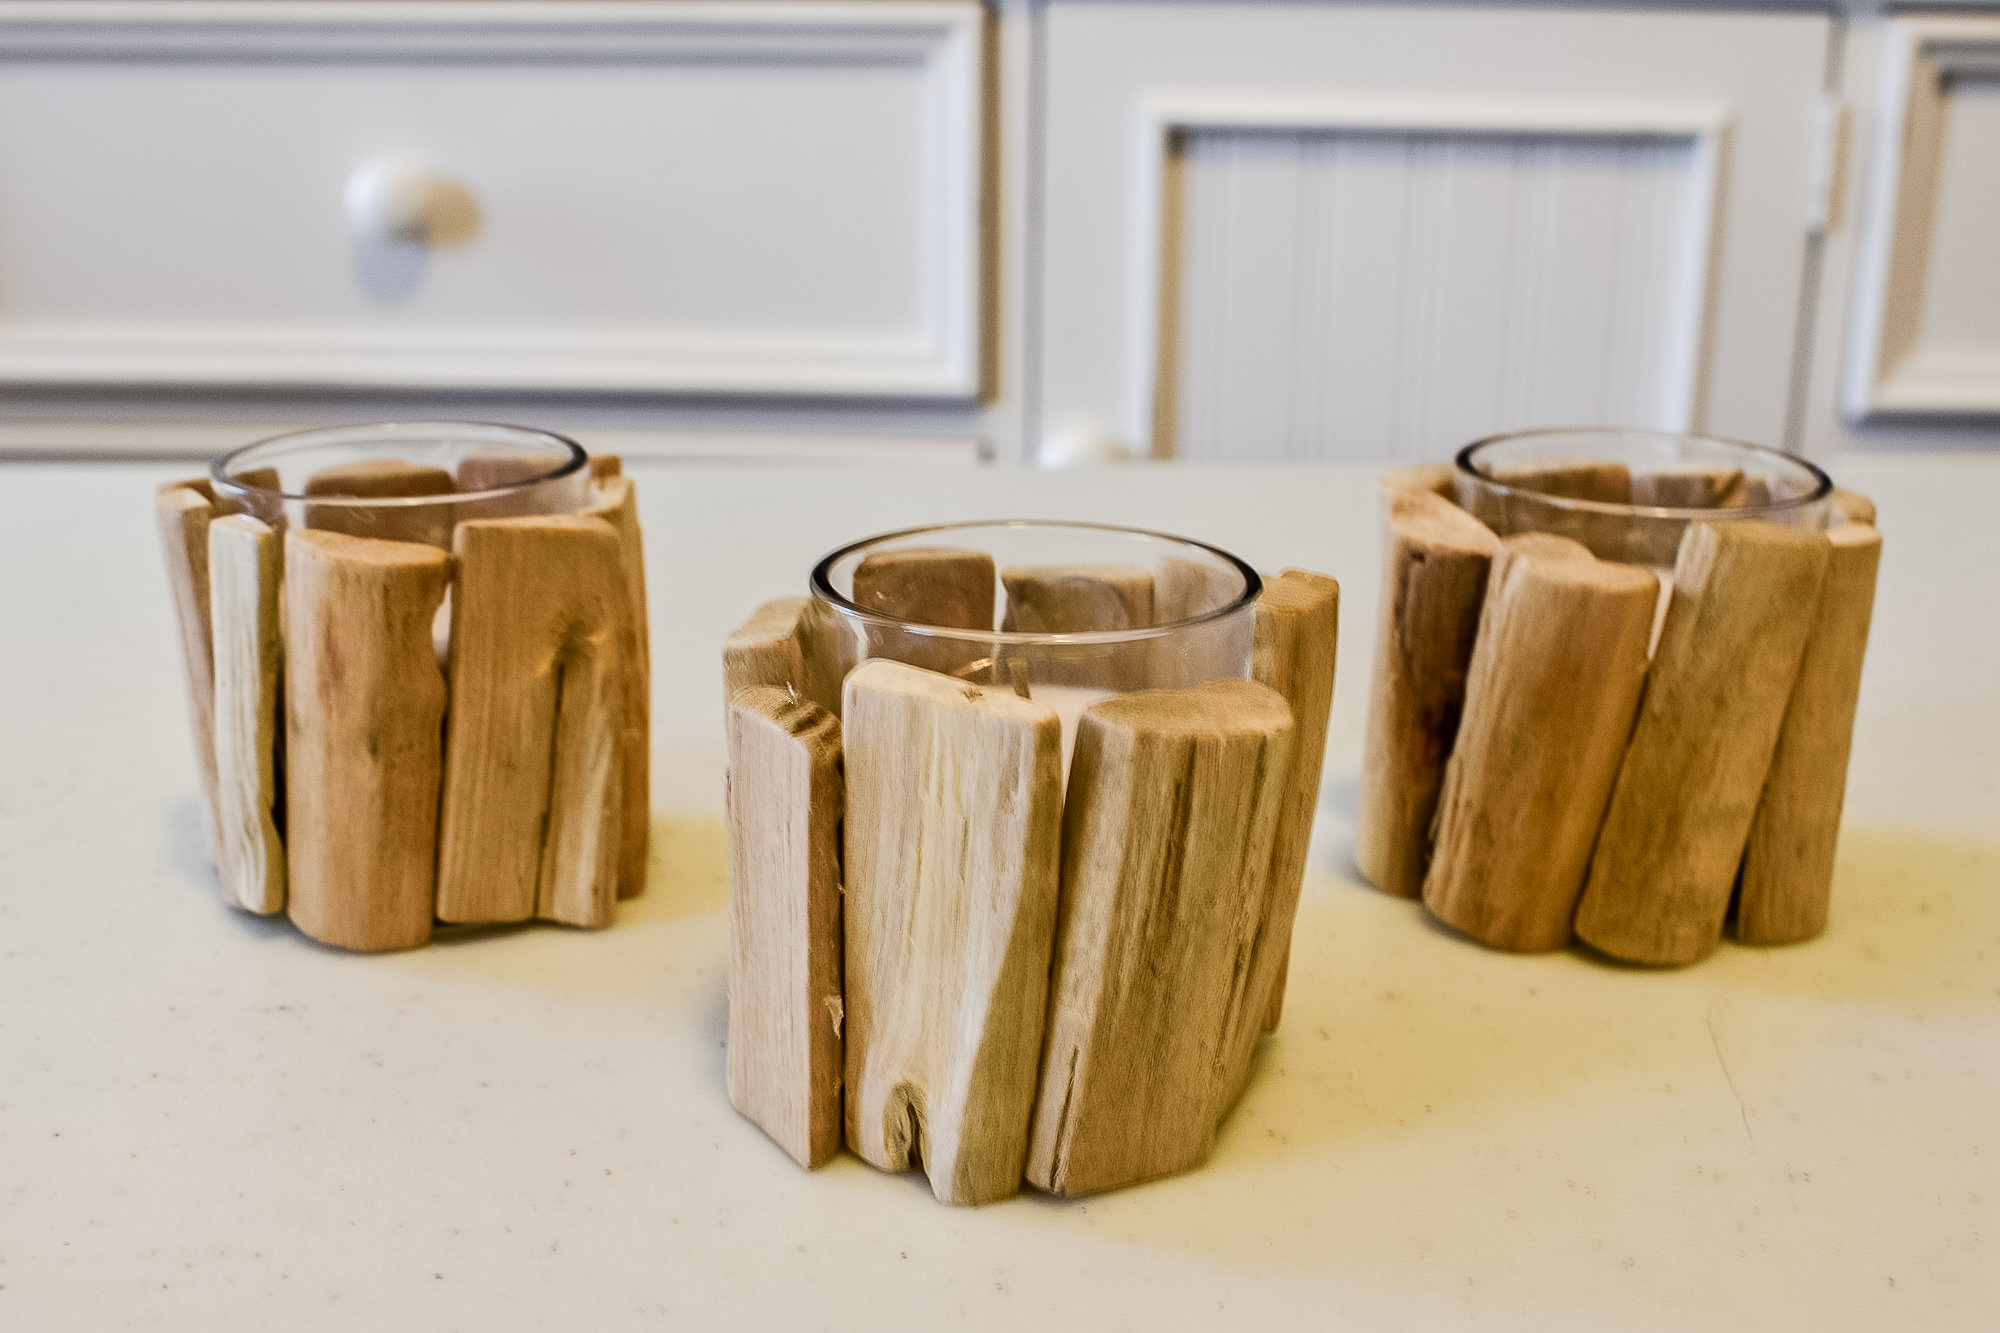 diy woodland candles before stain has been applied